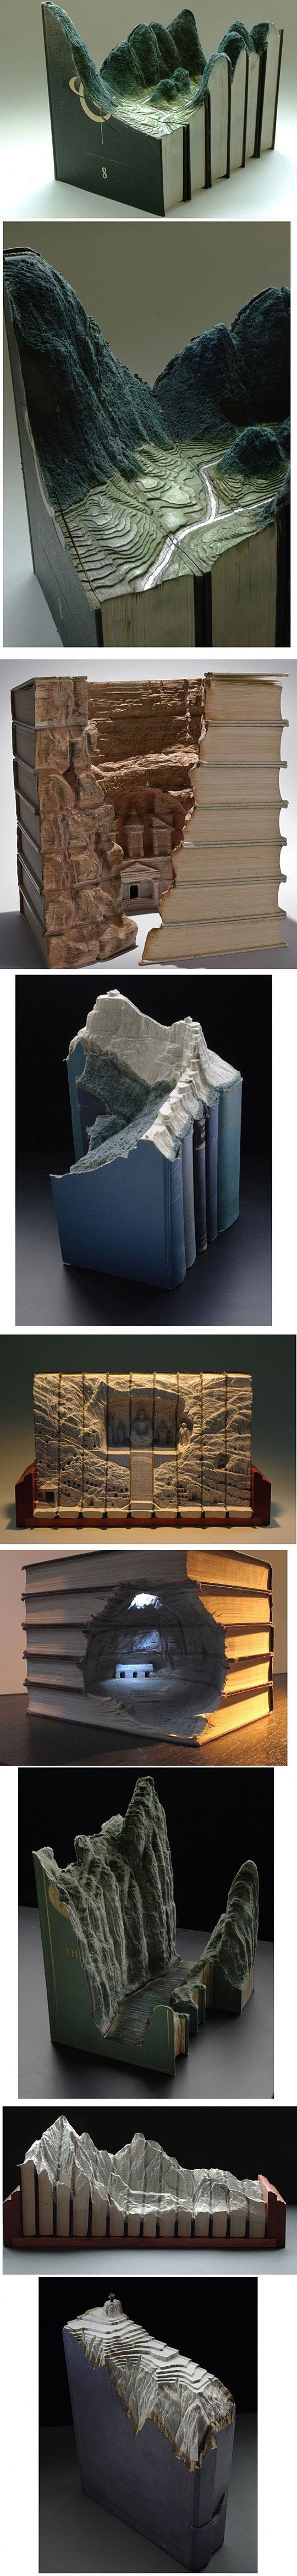 Book carving art